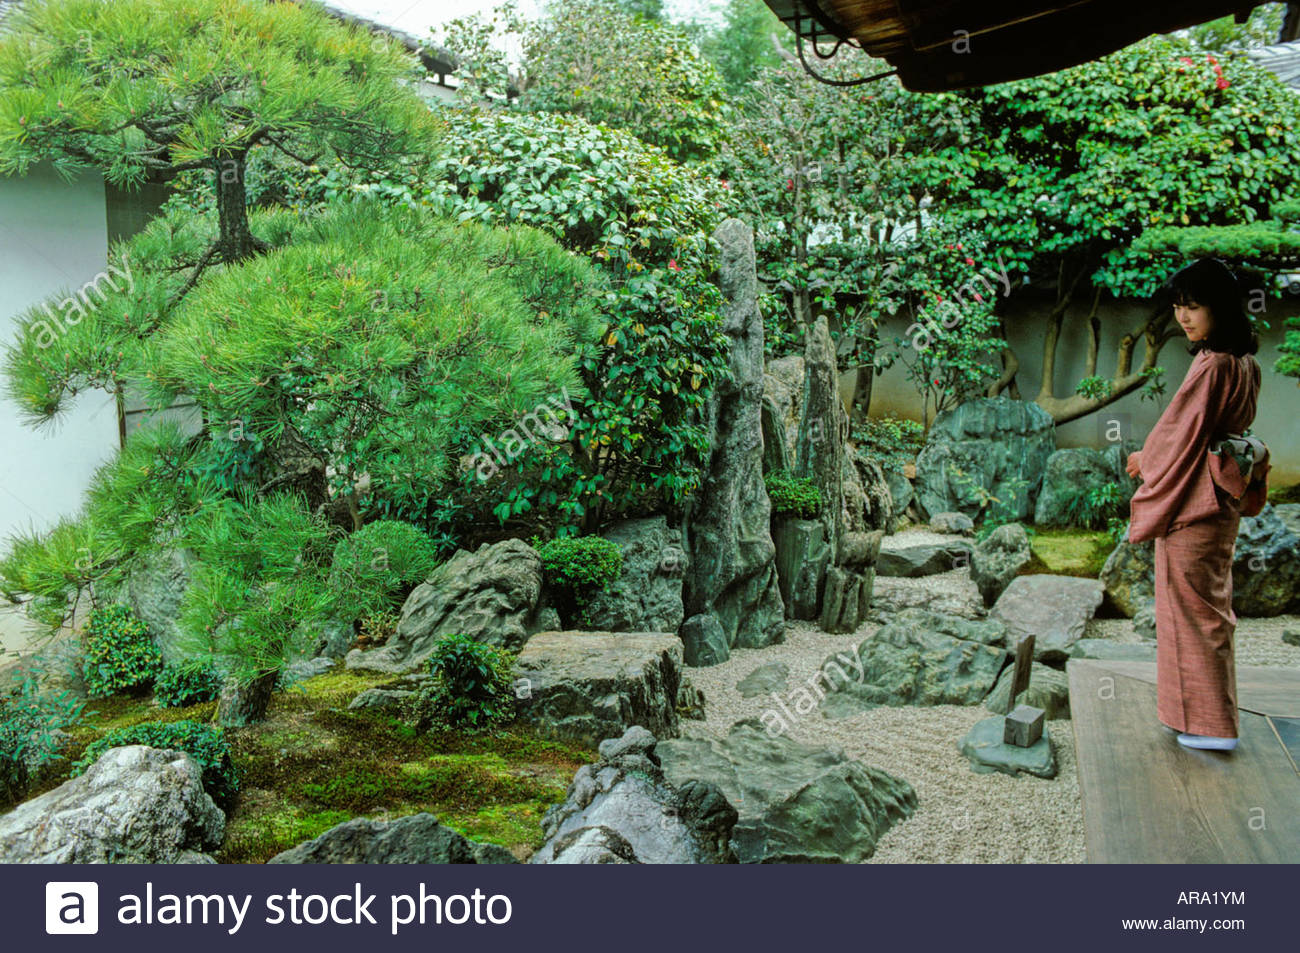 A Young Woman In Kimono At The Moss Garden With Part Of The Famous Stone  Garden At Ryoanji Temple, Kyoto Japan